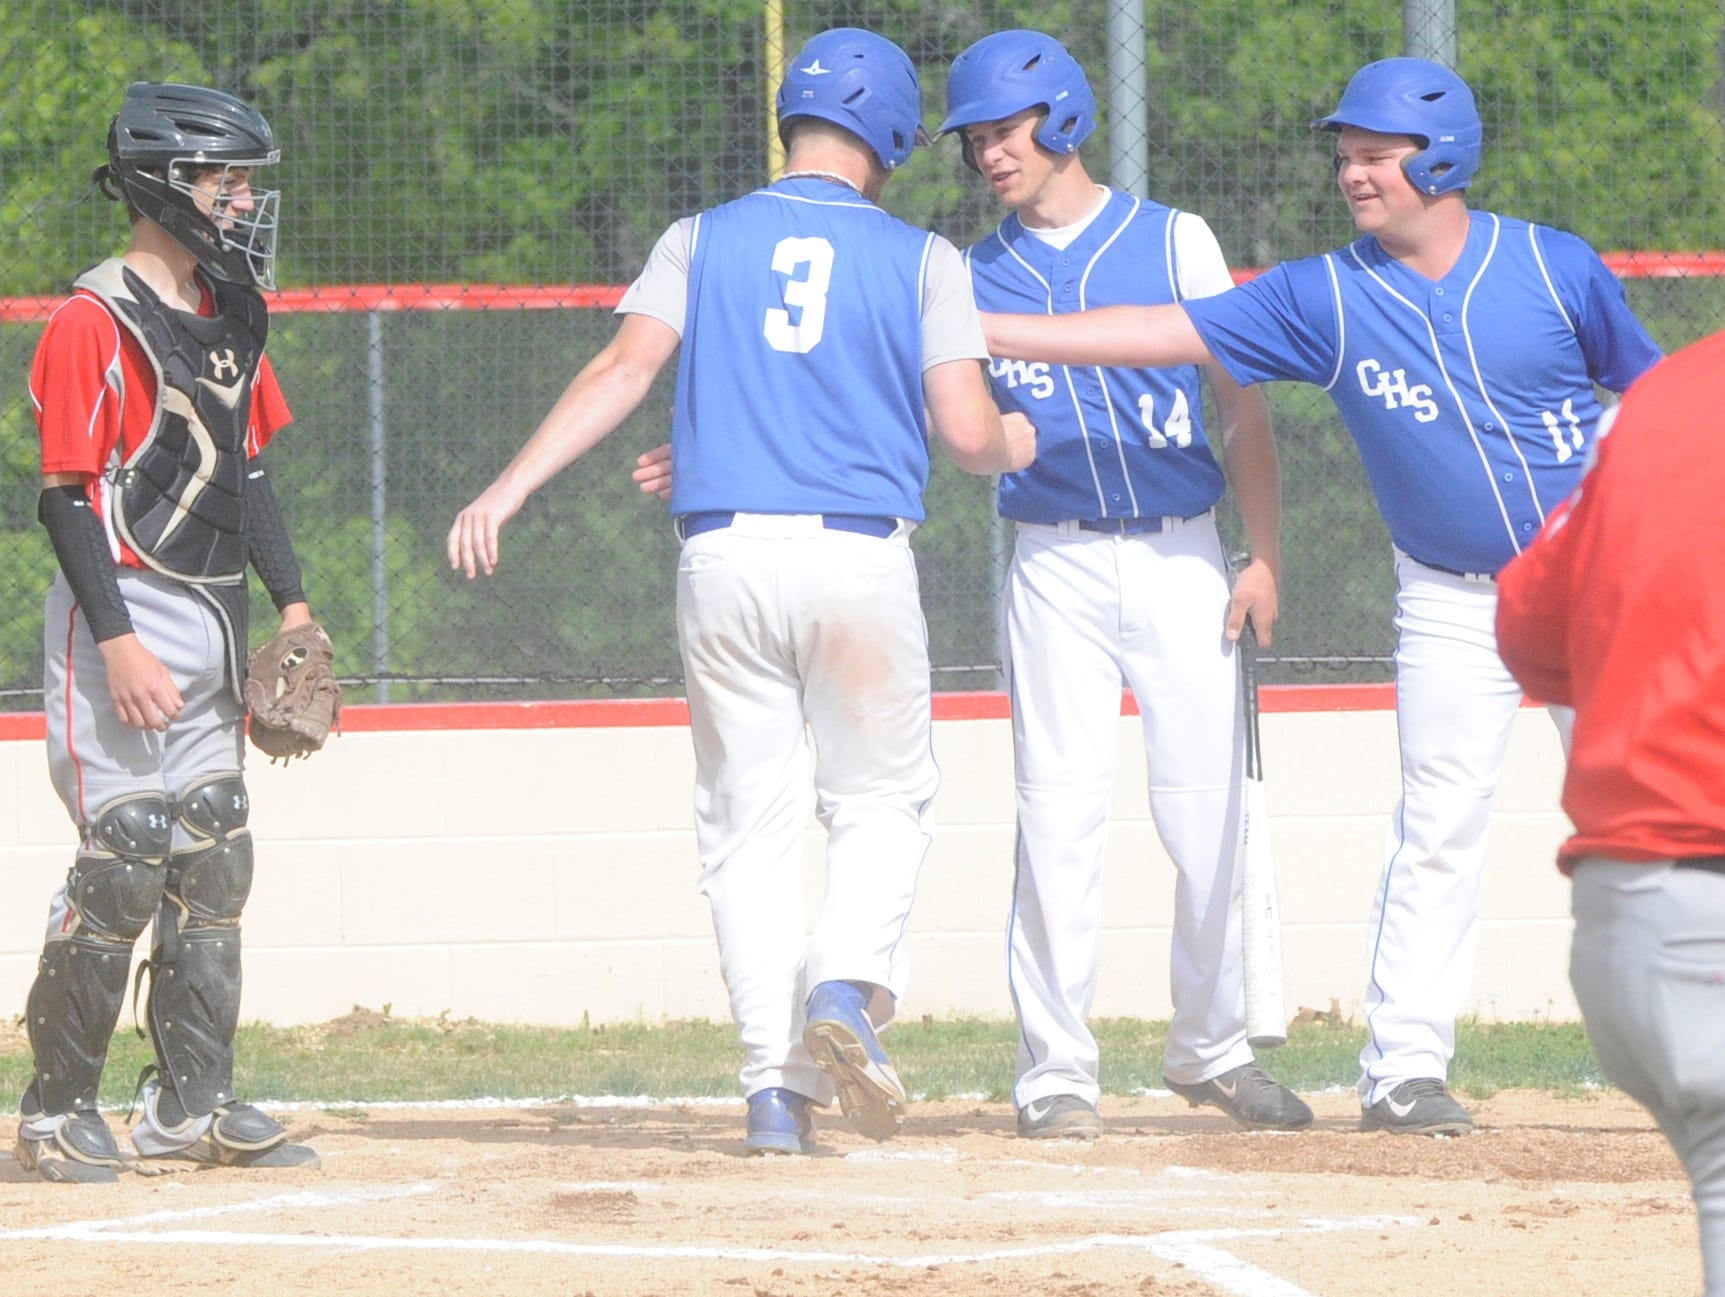 Three of Cotter's six seniors, from left, Ryan Roberts, Brett Walker and Colton Neal, celebrate after scoring a run against Norfork in a game earlier this season.